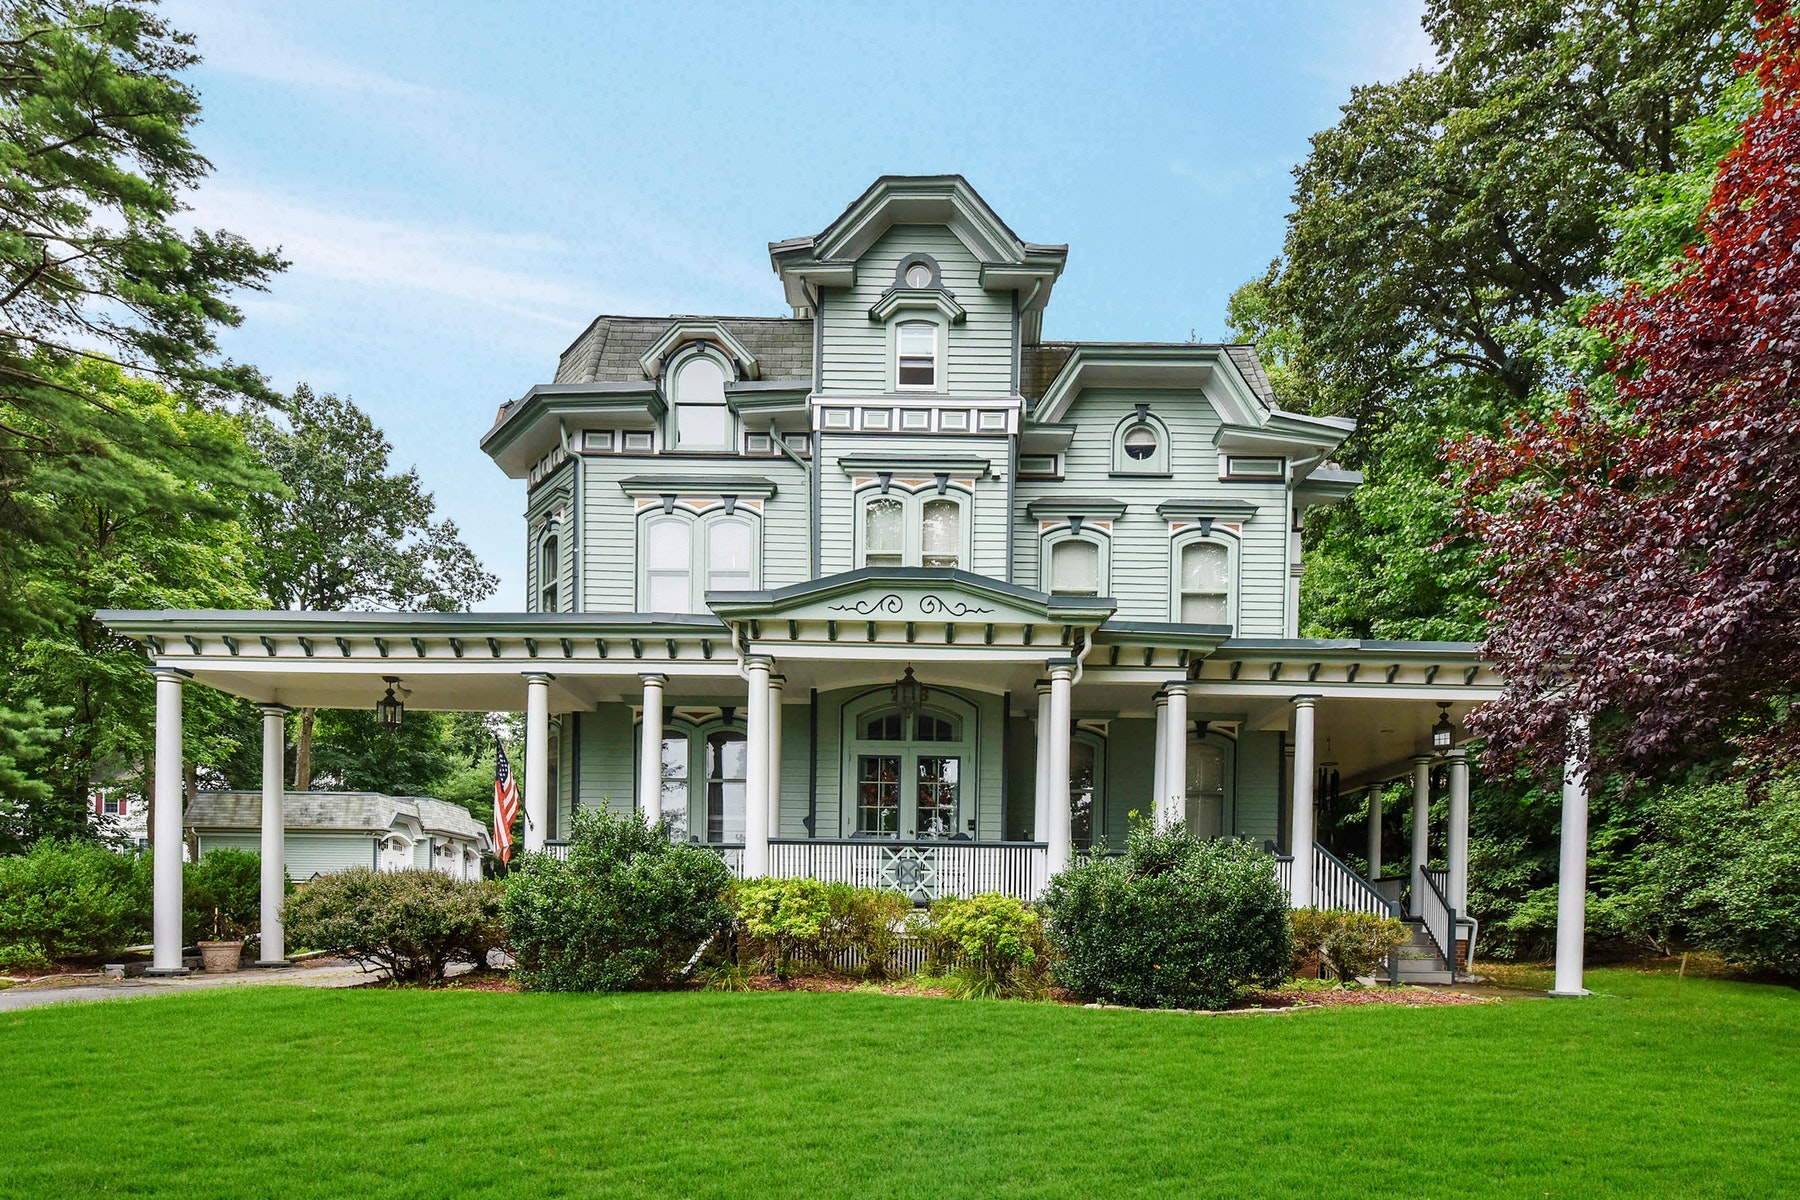 Single Family Homes for Sale at Presenting The Iconic Thomas Wallington House Circa 1867. 226 Prospect Street Ridgewood, New Jersey 07450 United States